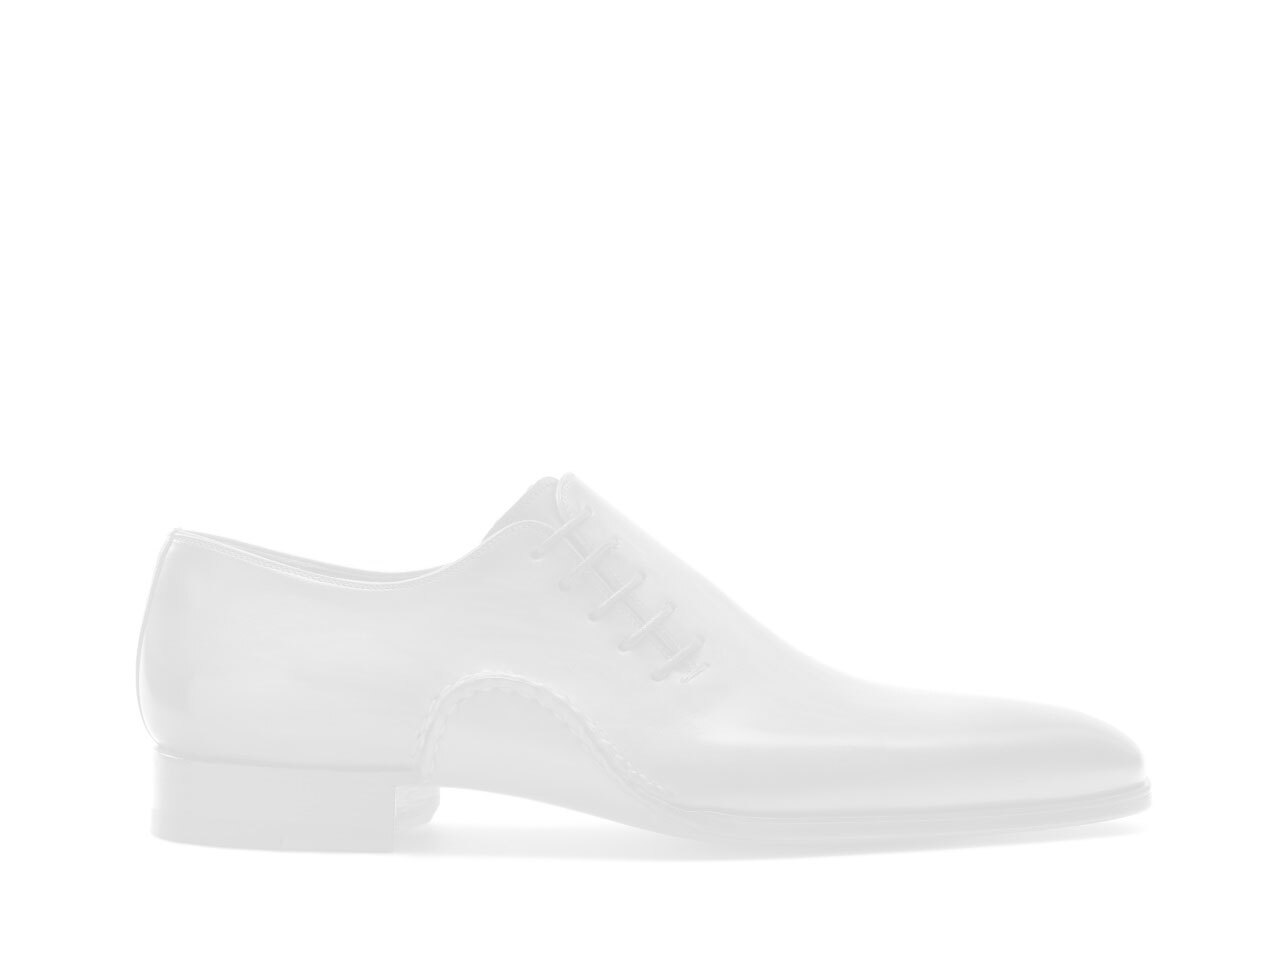 Sole of the Magnanni Sona White Men's Sneakers